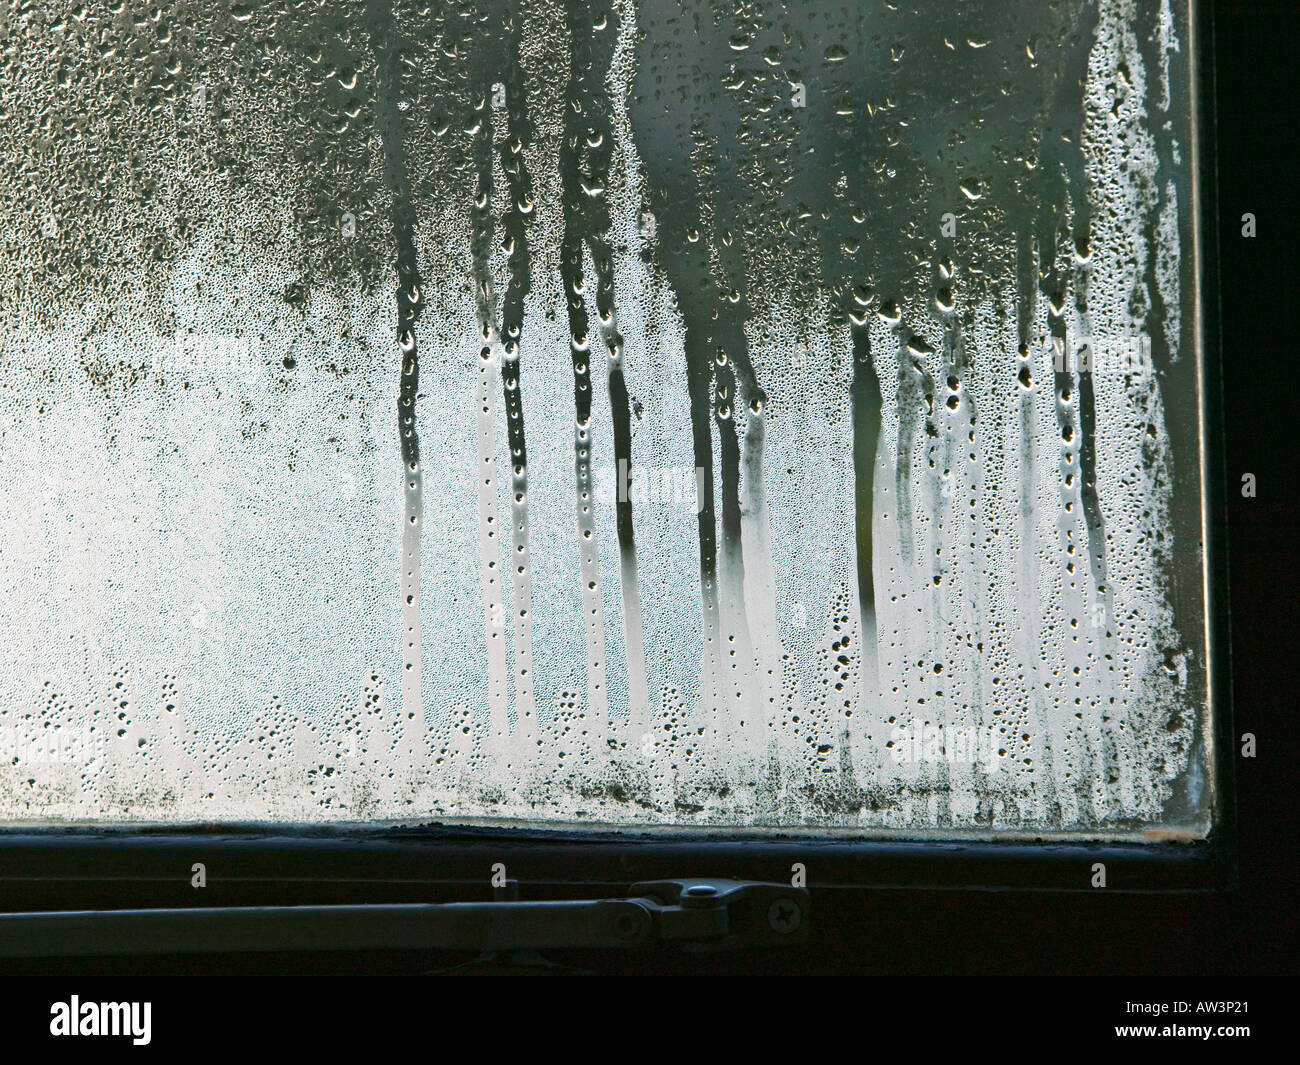 Condensation on double glazed window in house Wales UK - Stock Image